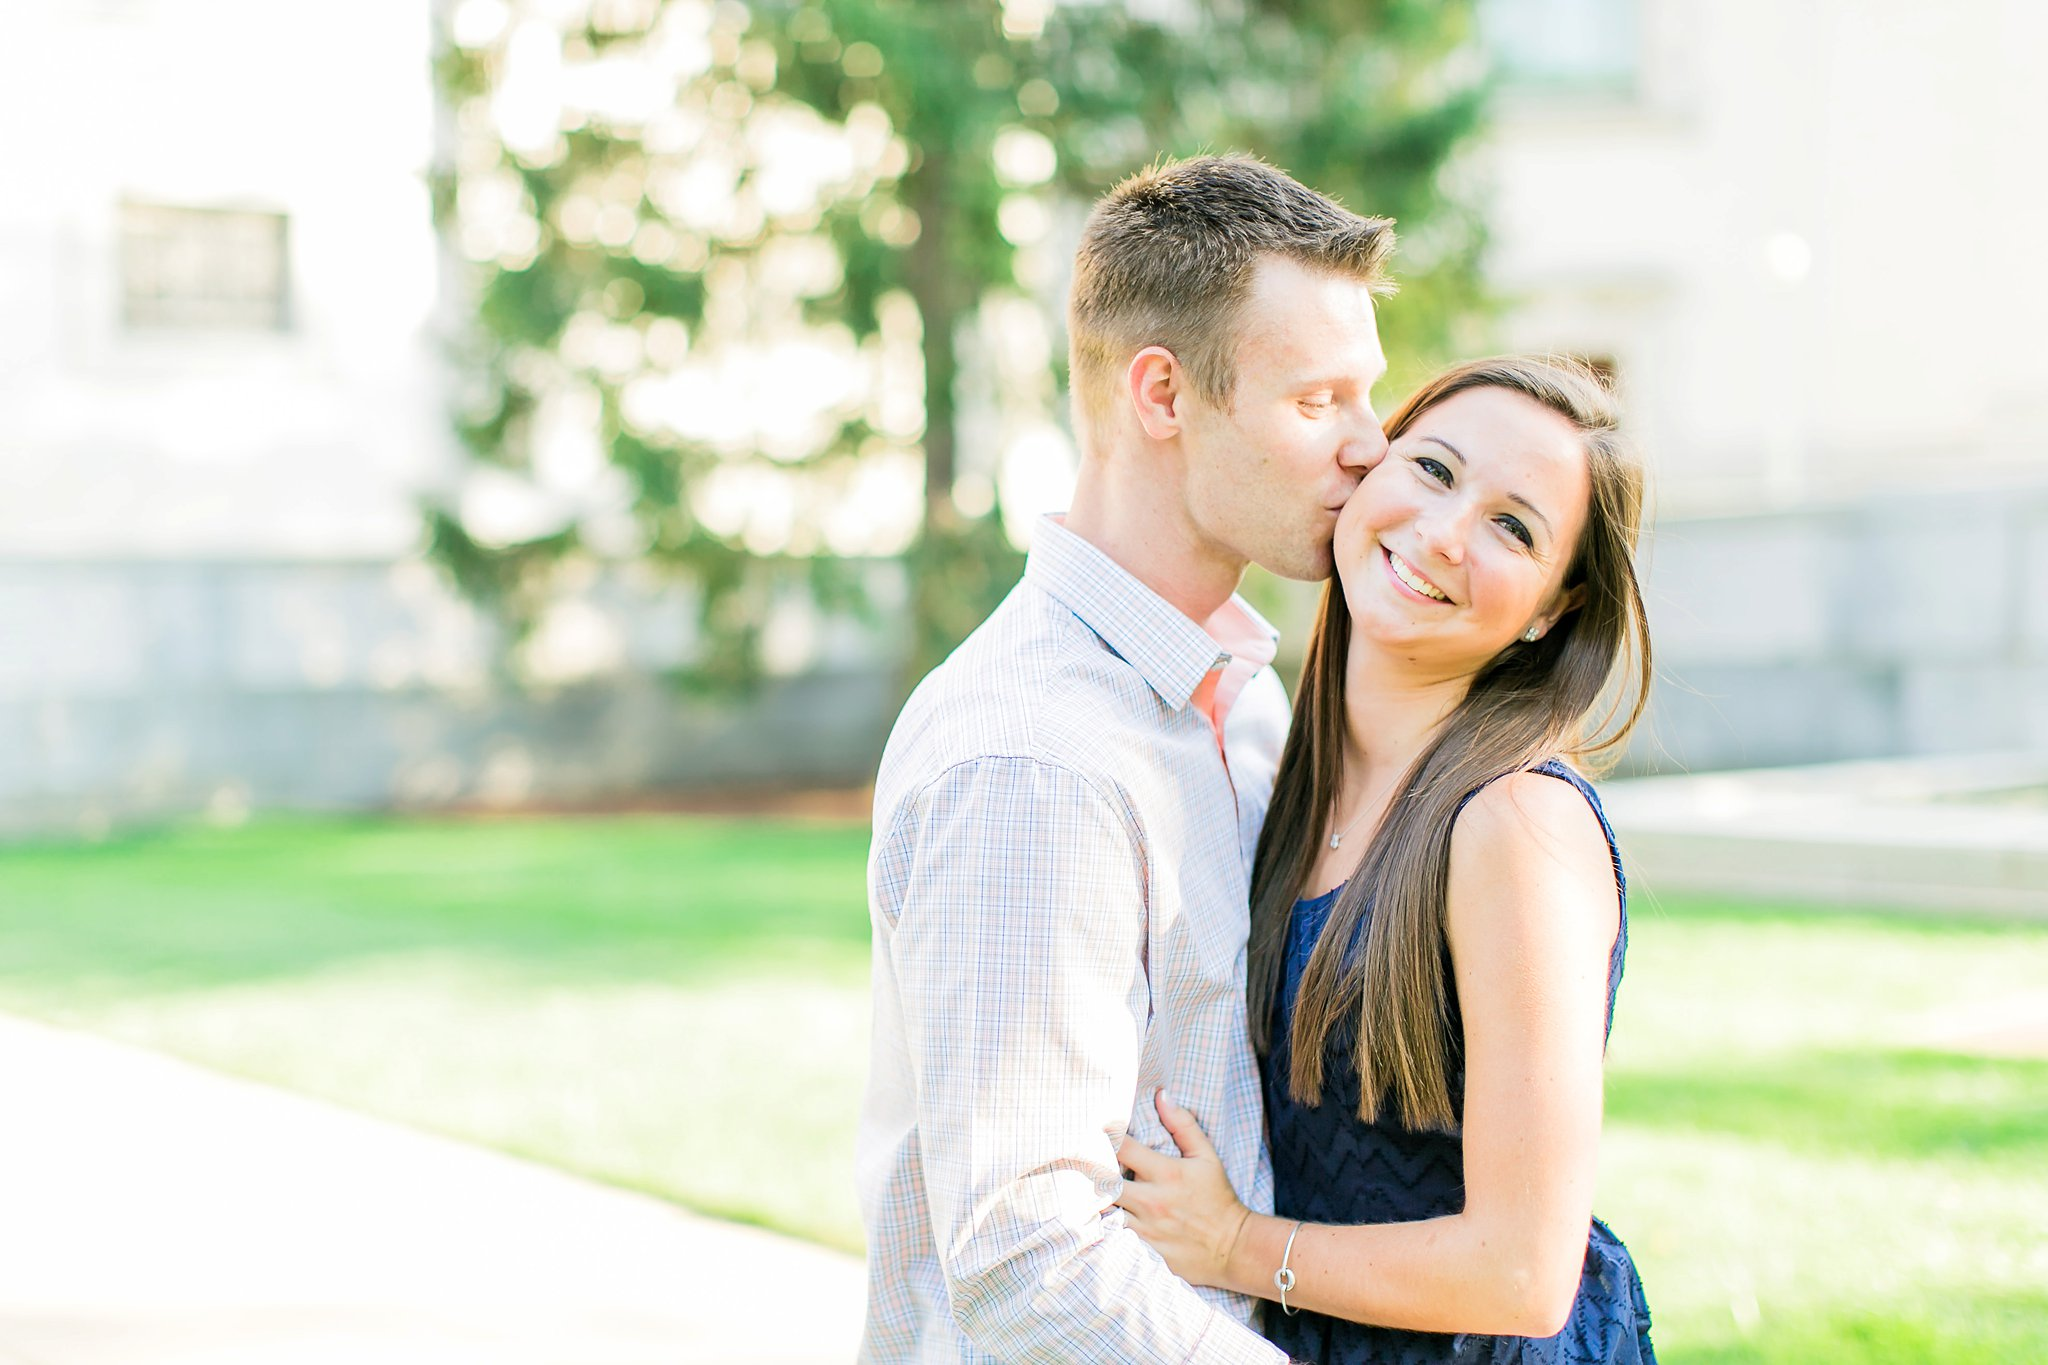 Naval Academy Engagement Photos Annapolis Wedding Photographer Megan Kelsey Photography Megan & Travis-7.jpg